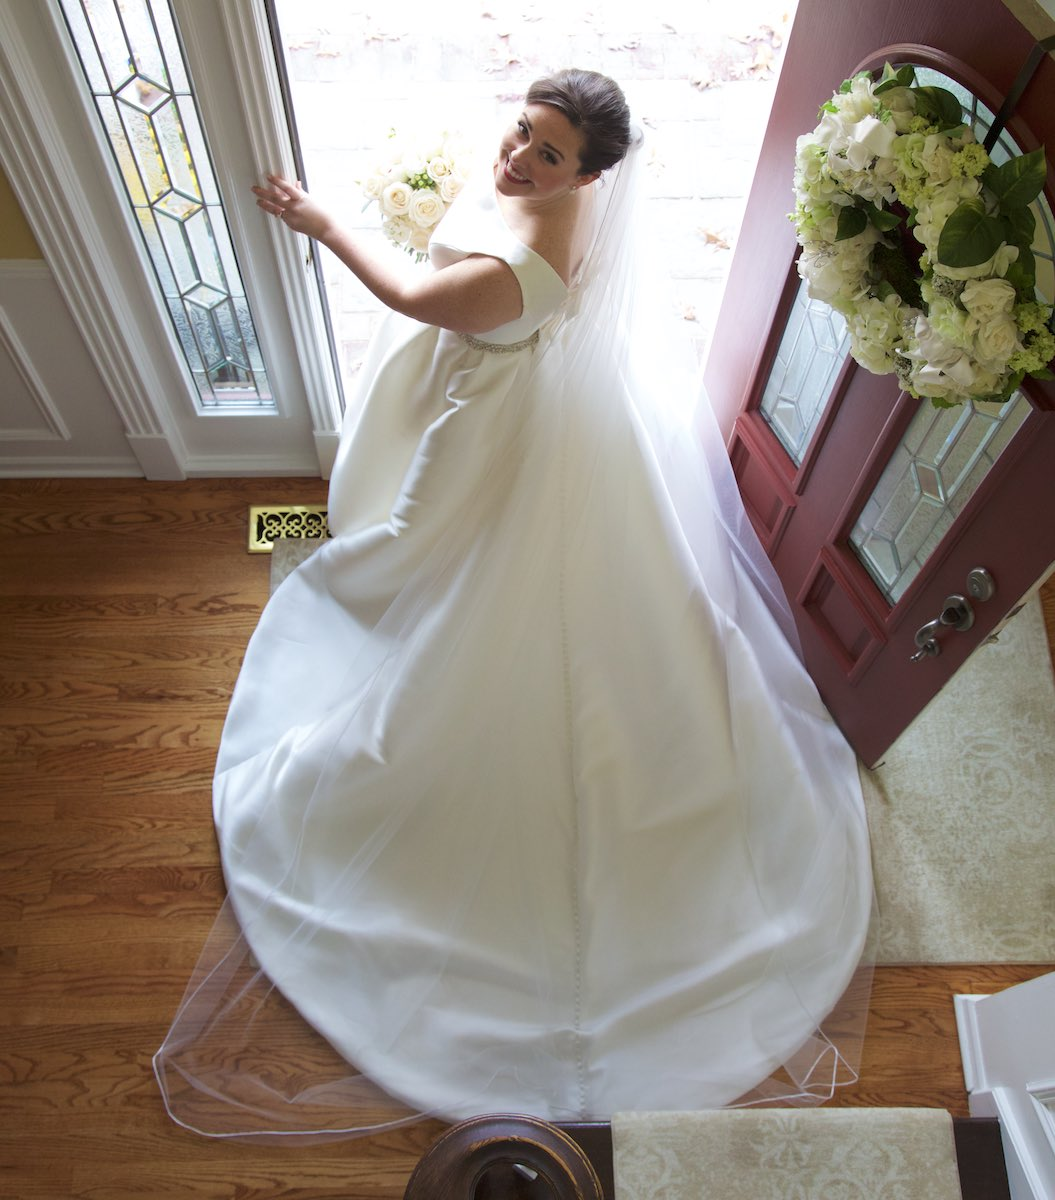 Elizabeth poses in the doorway of the house she grew up in, before heading to the ceremony at St. Rita of Cascia Shrine Chapel in Chicago. Wedding photography by Steve & Tiffany Warmowski